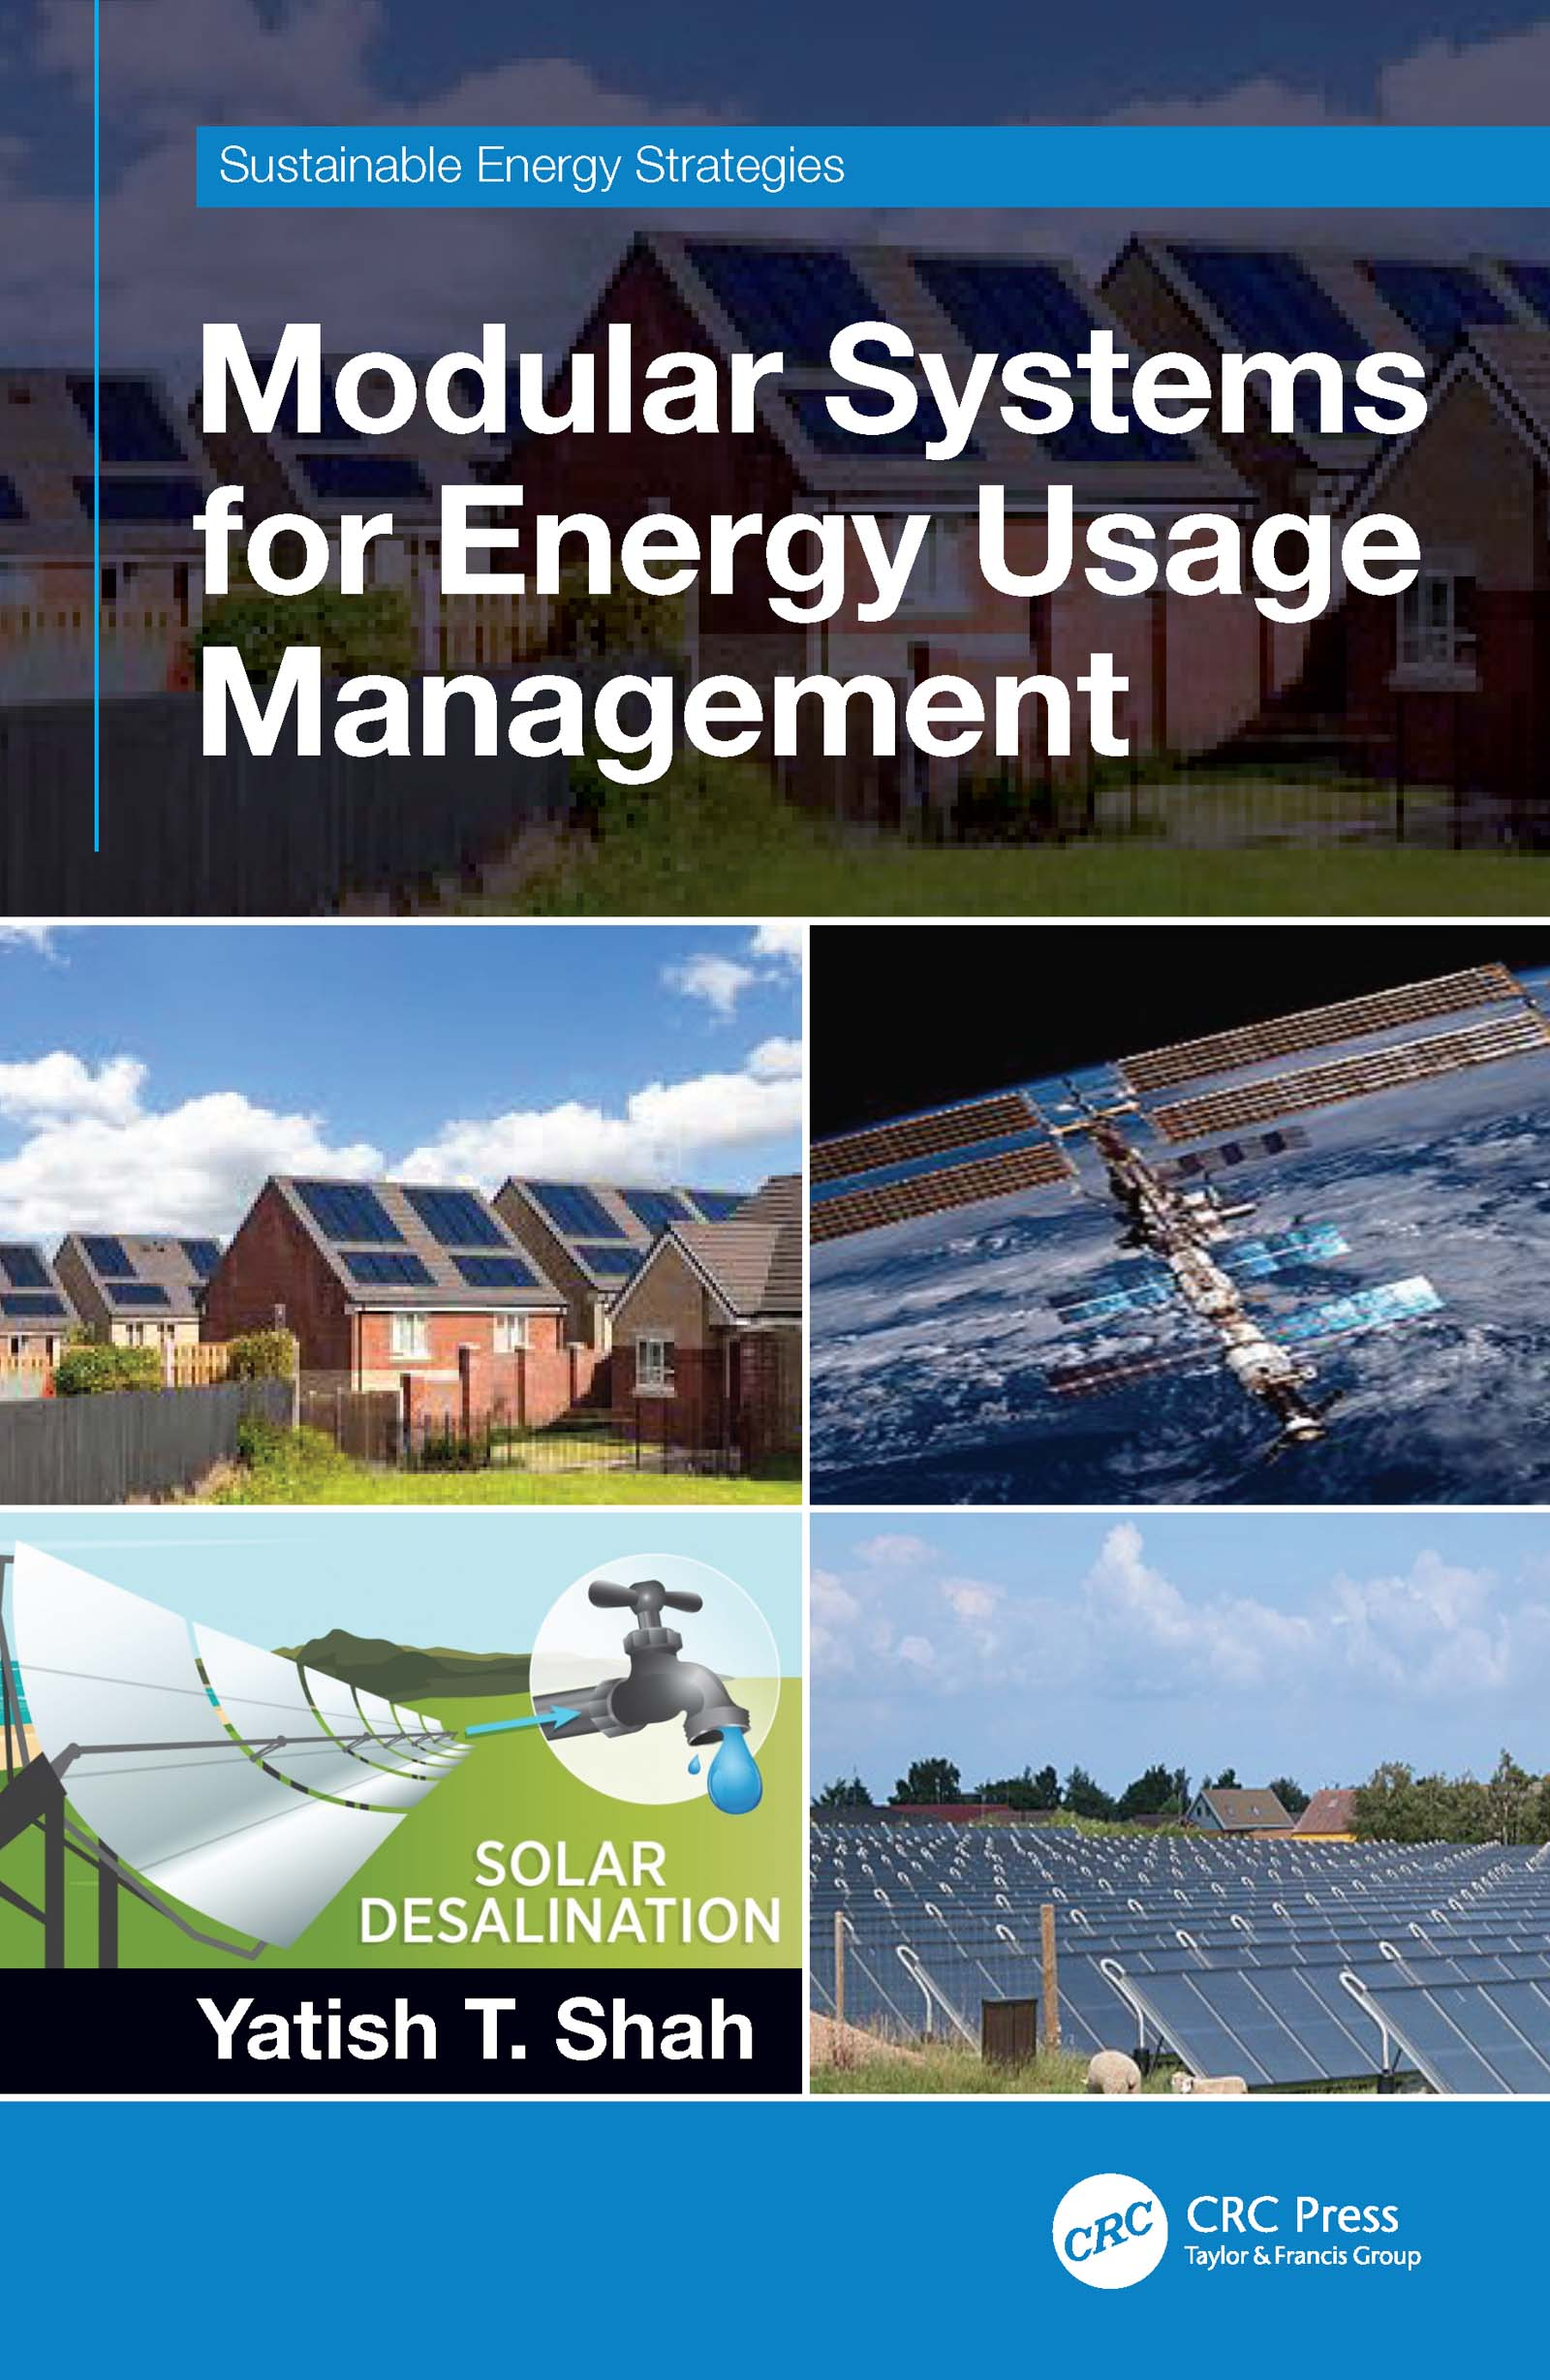 Modular Systems for Energy Usage in Buildings